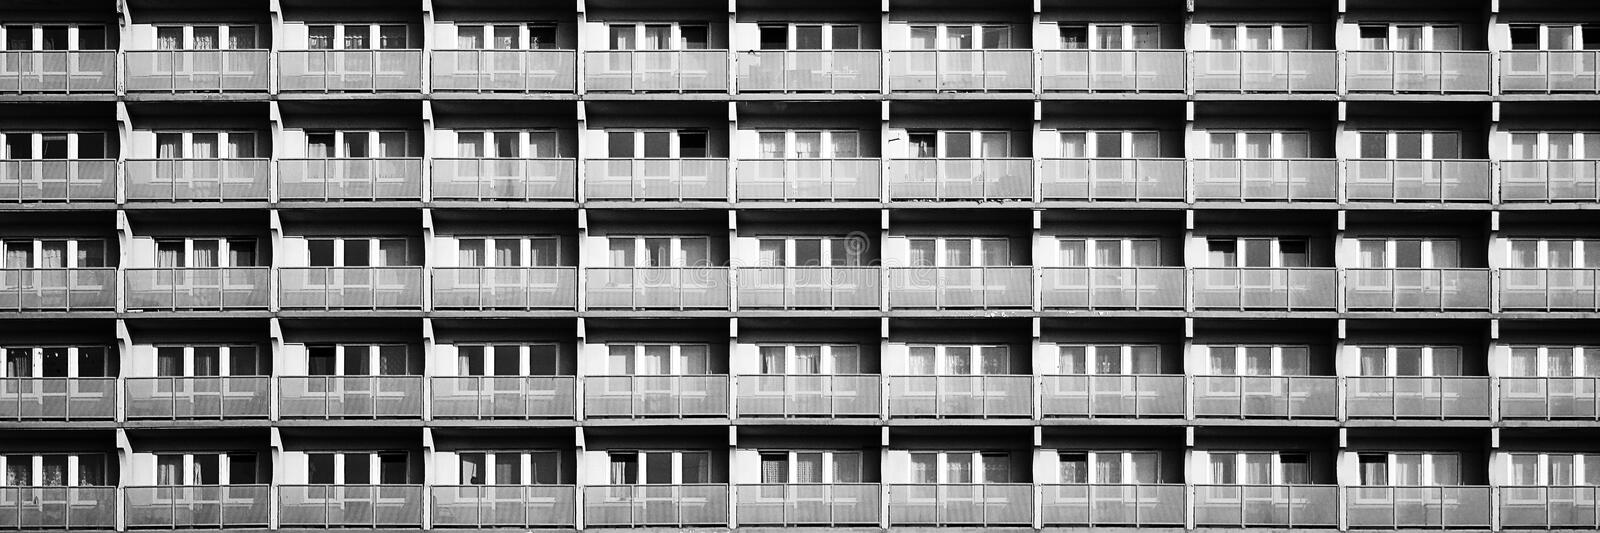 Residential building in the city stock photos